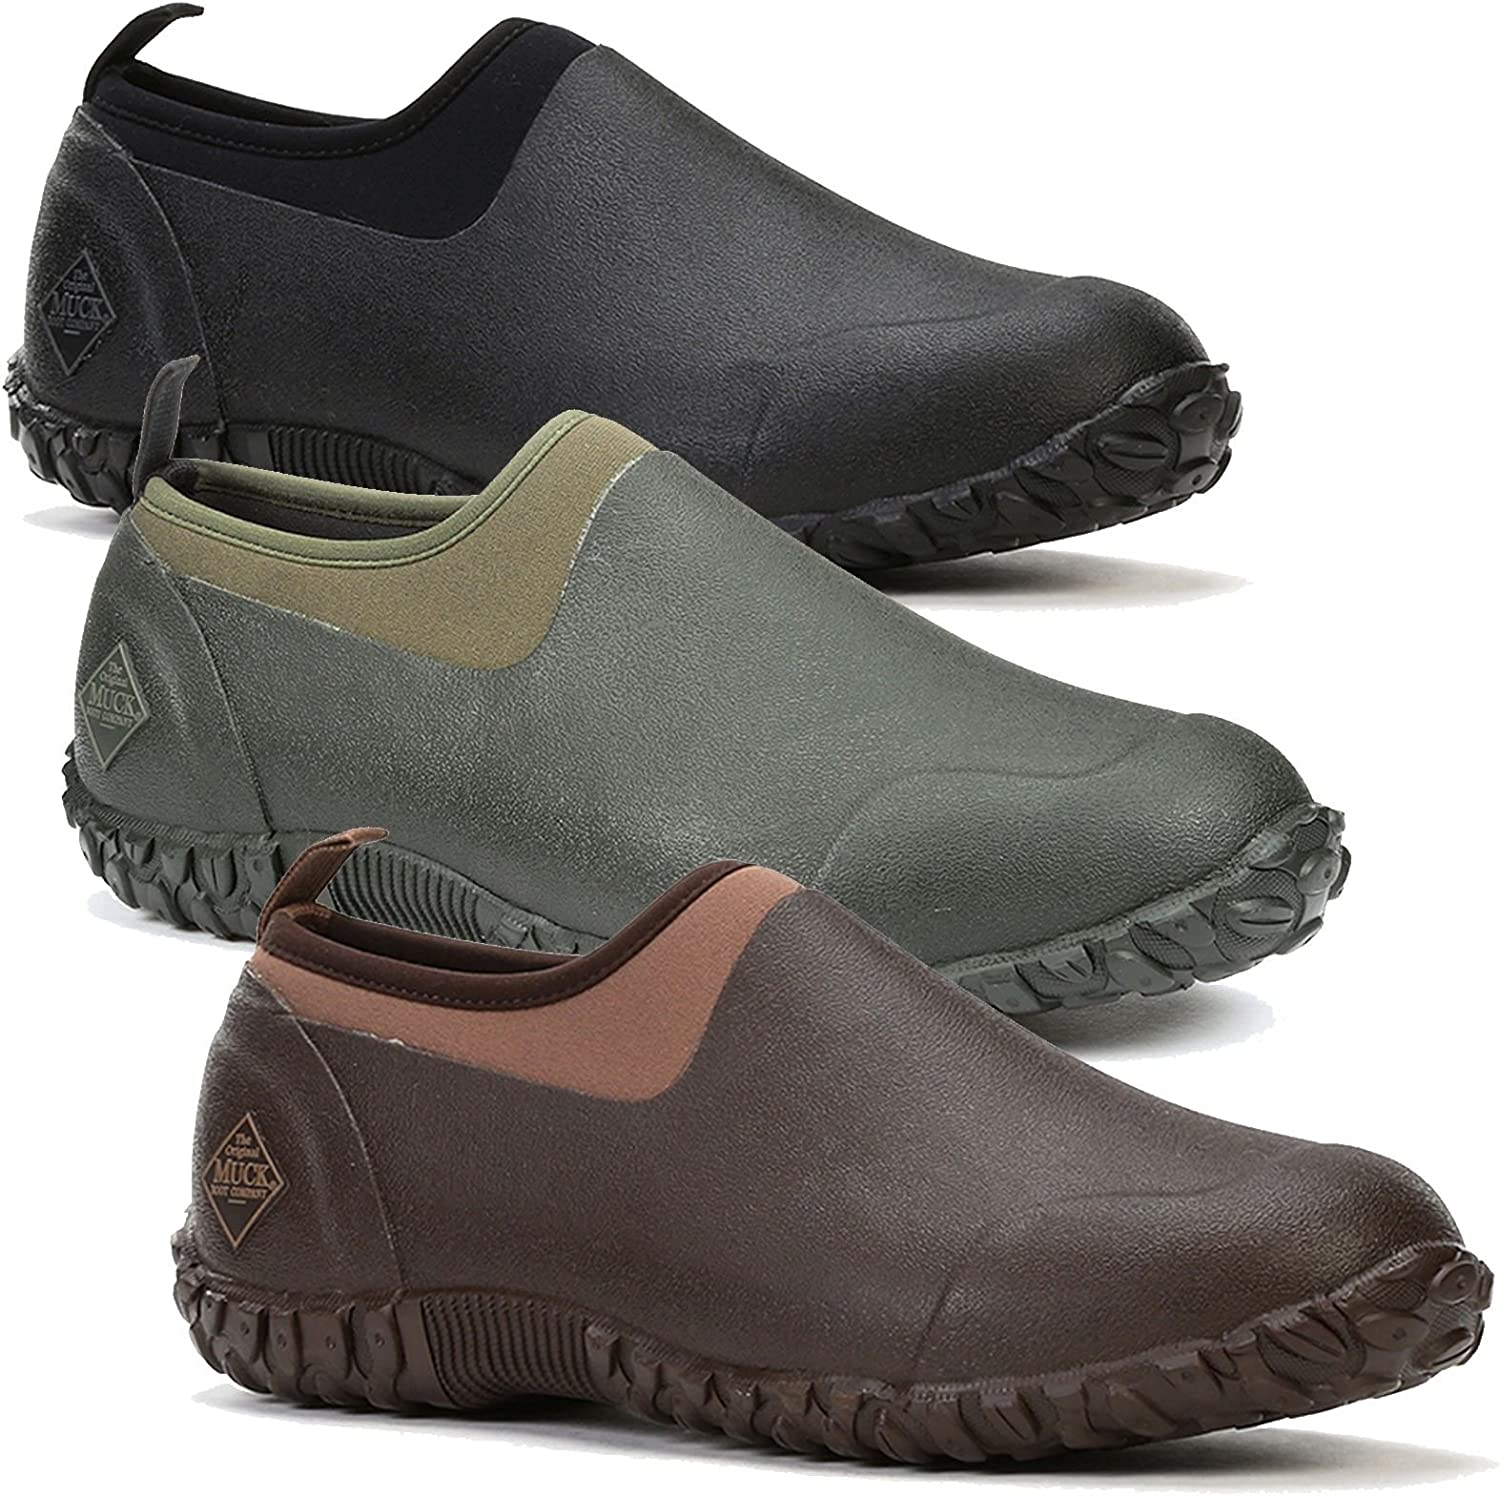 Mens Muckmaster Riding Farm Stable Yard Barn Garden Outdoor Low Ankle shoes